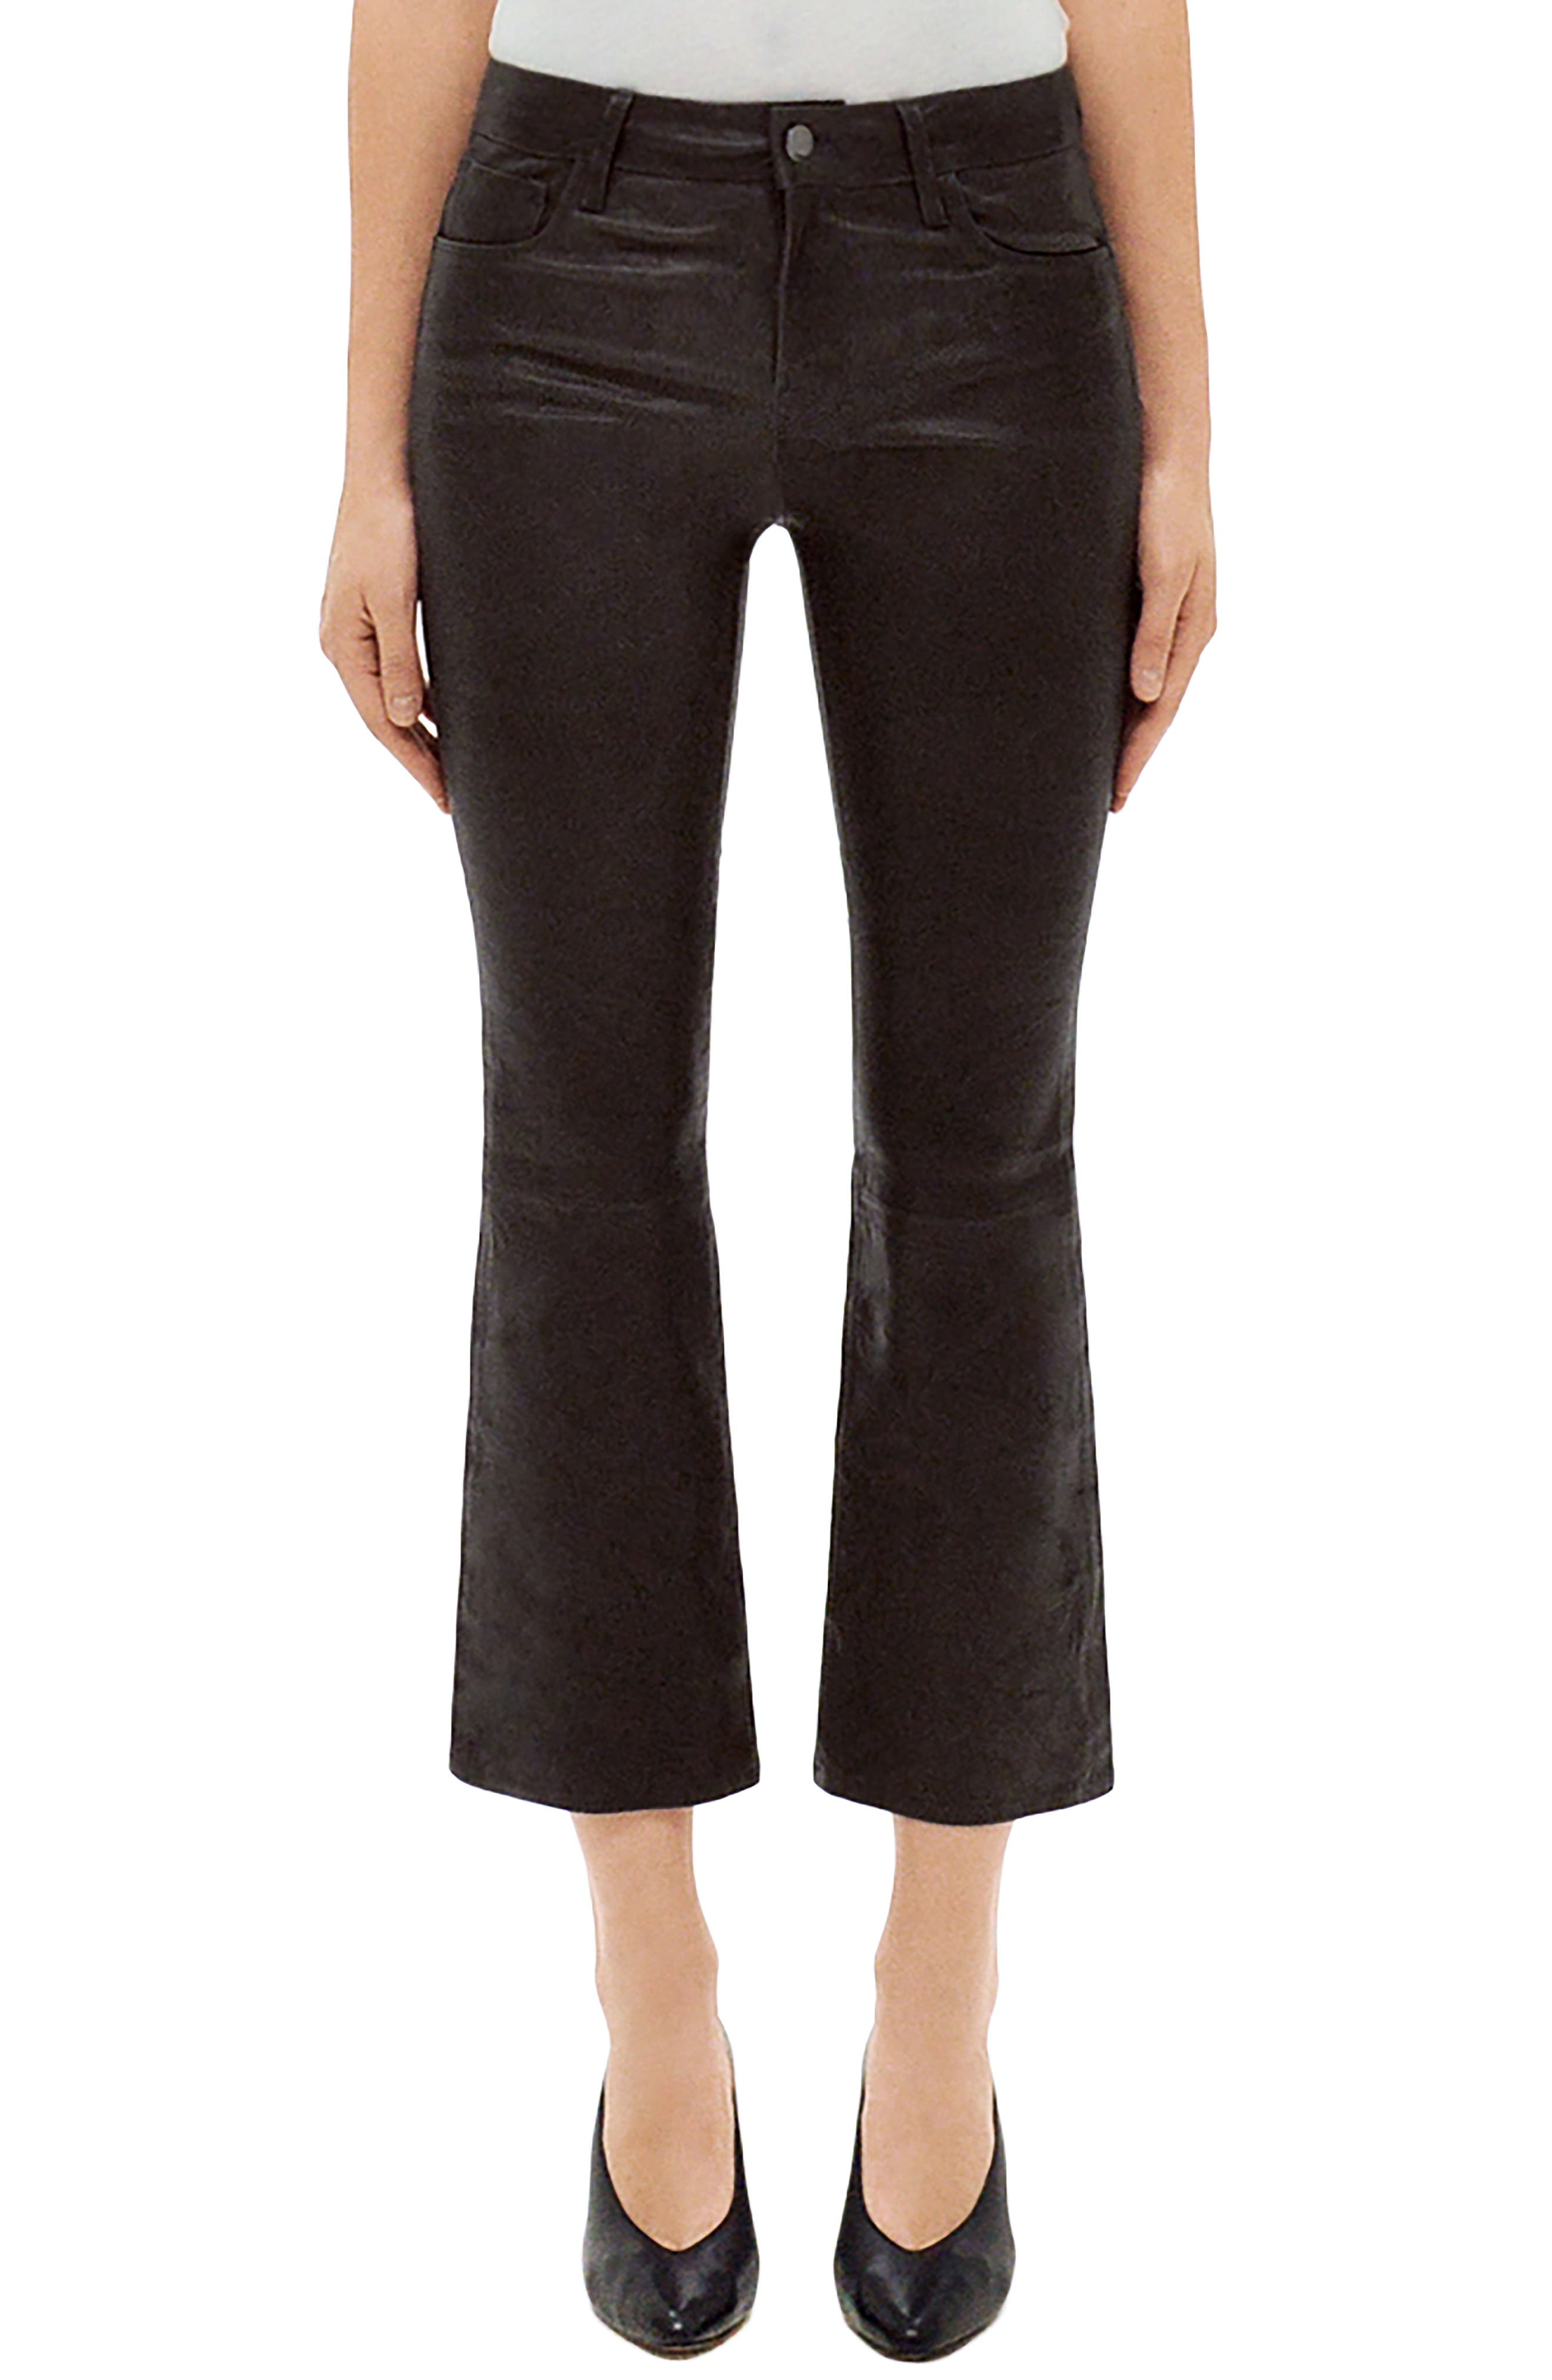 Main Image - J Brand Selena Mid Rise Crop Bootcut Leather Jeans